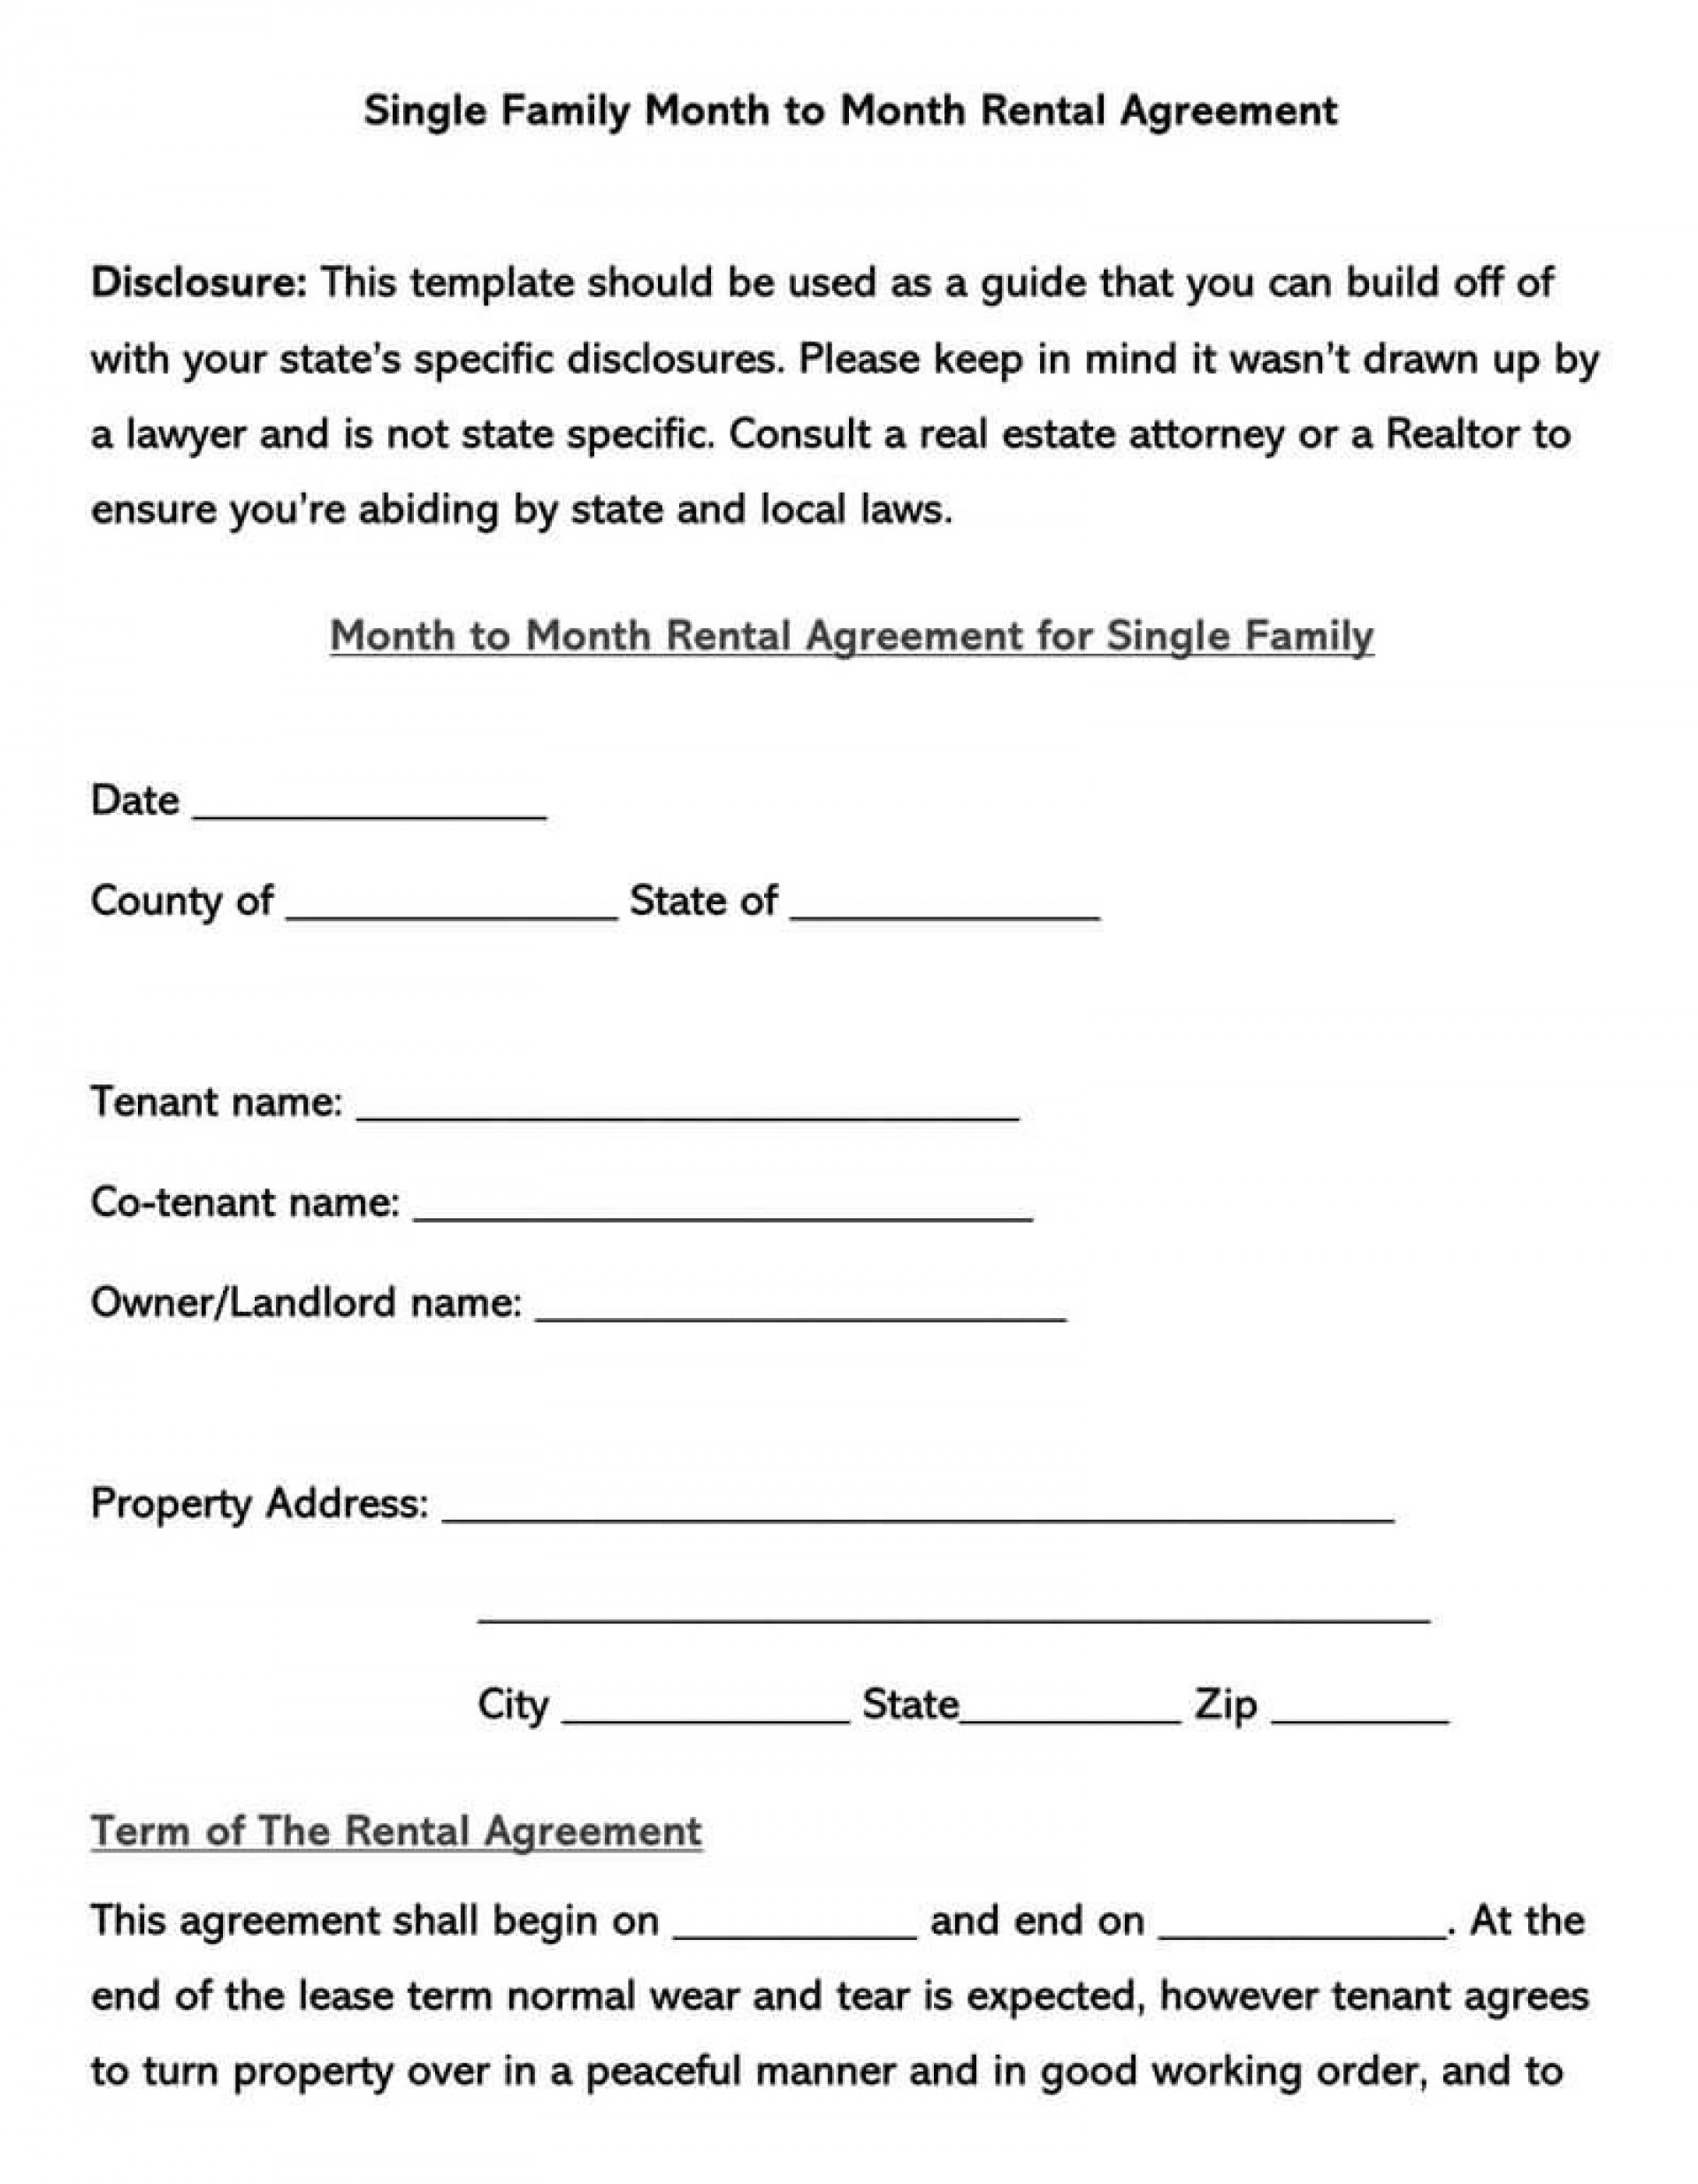 008 Excellent Rental Contract Template Free Download Image  Agreement Sample Room Form1920